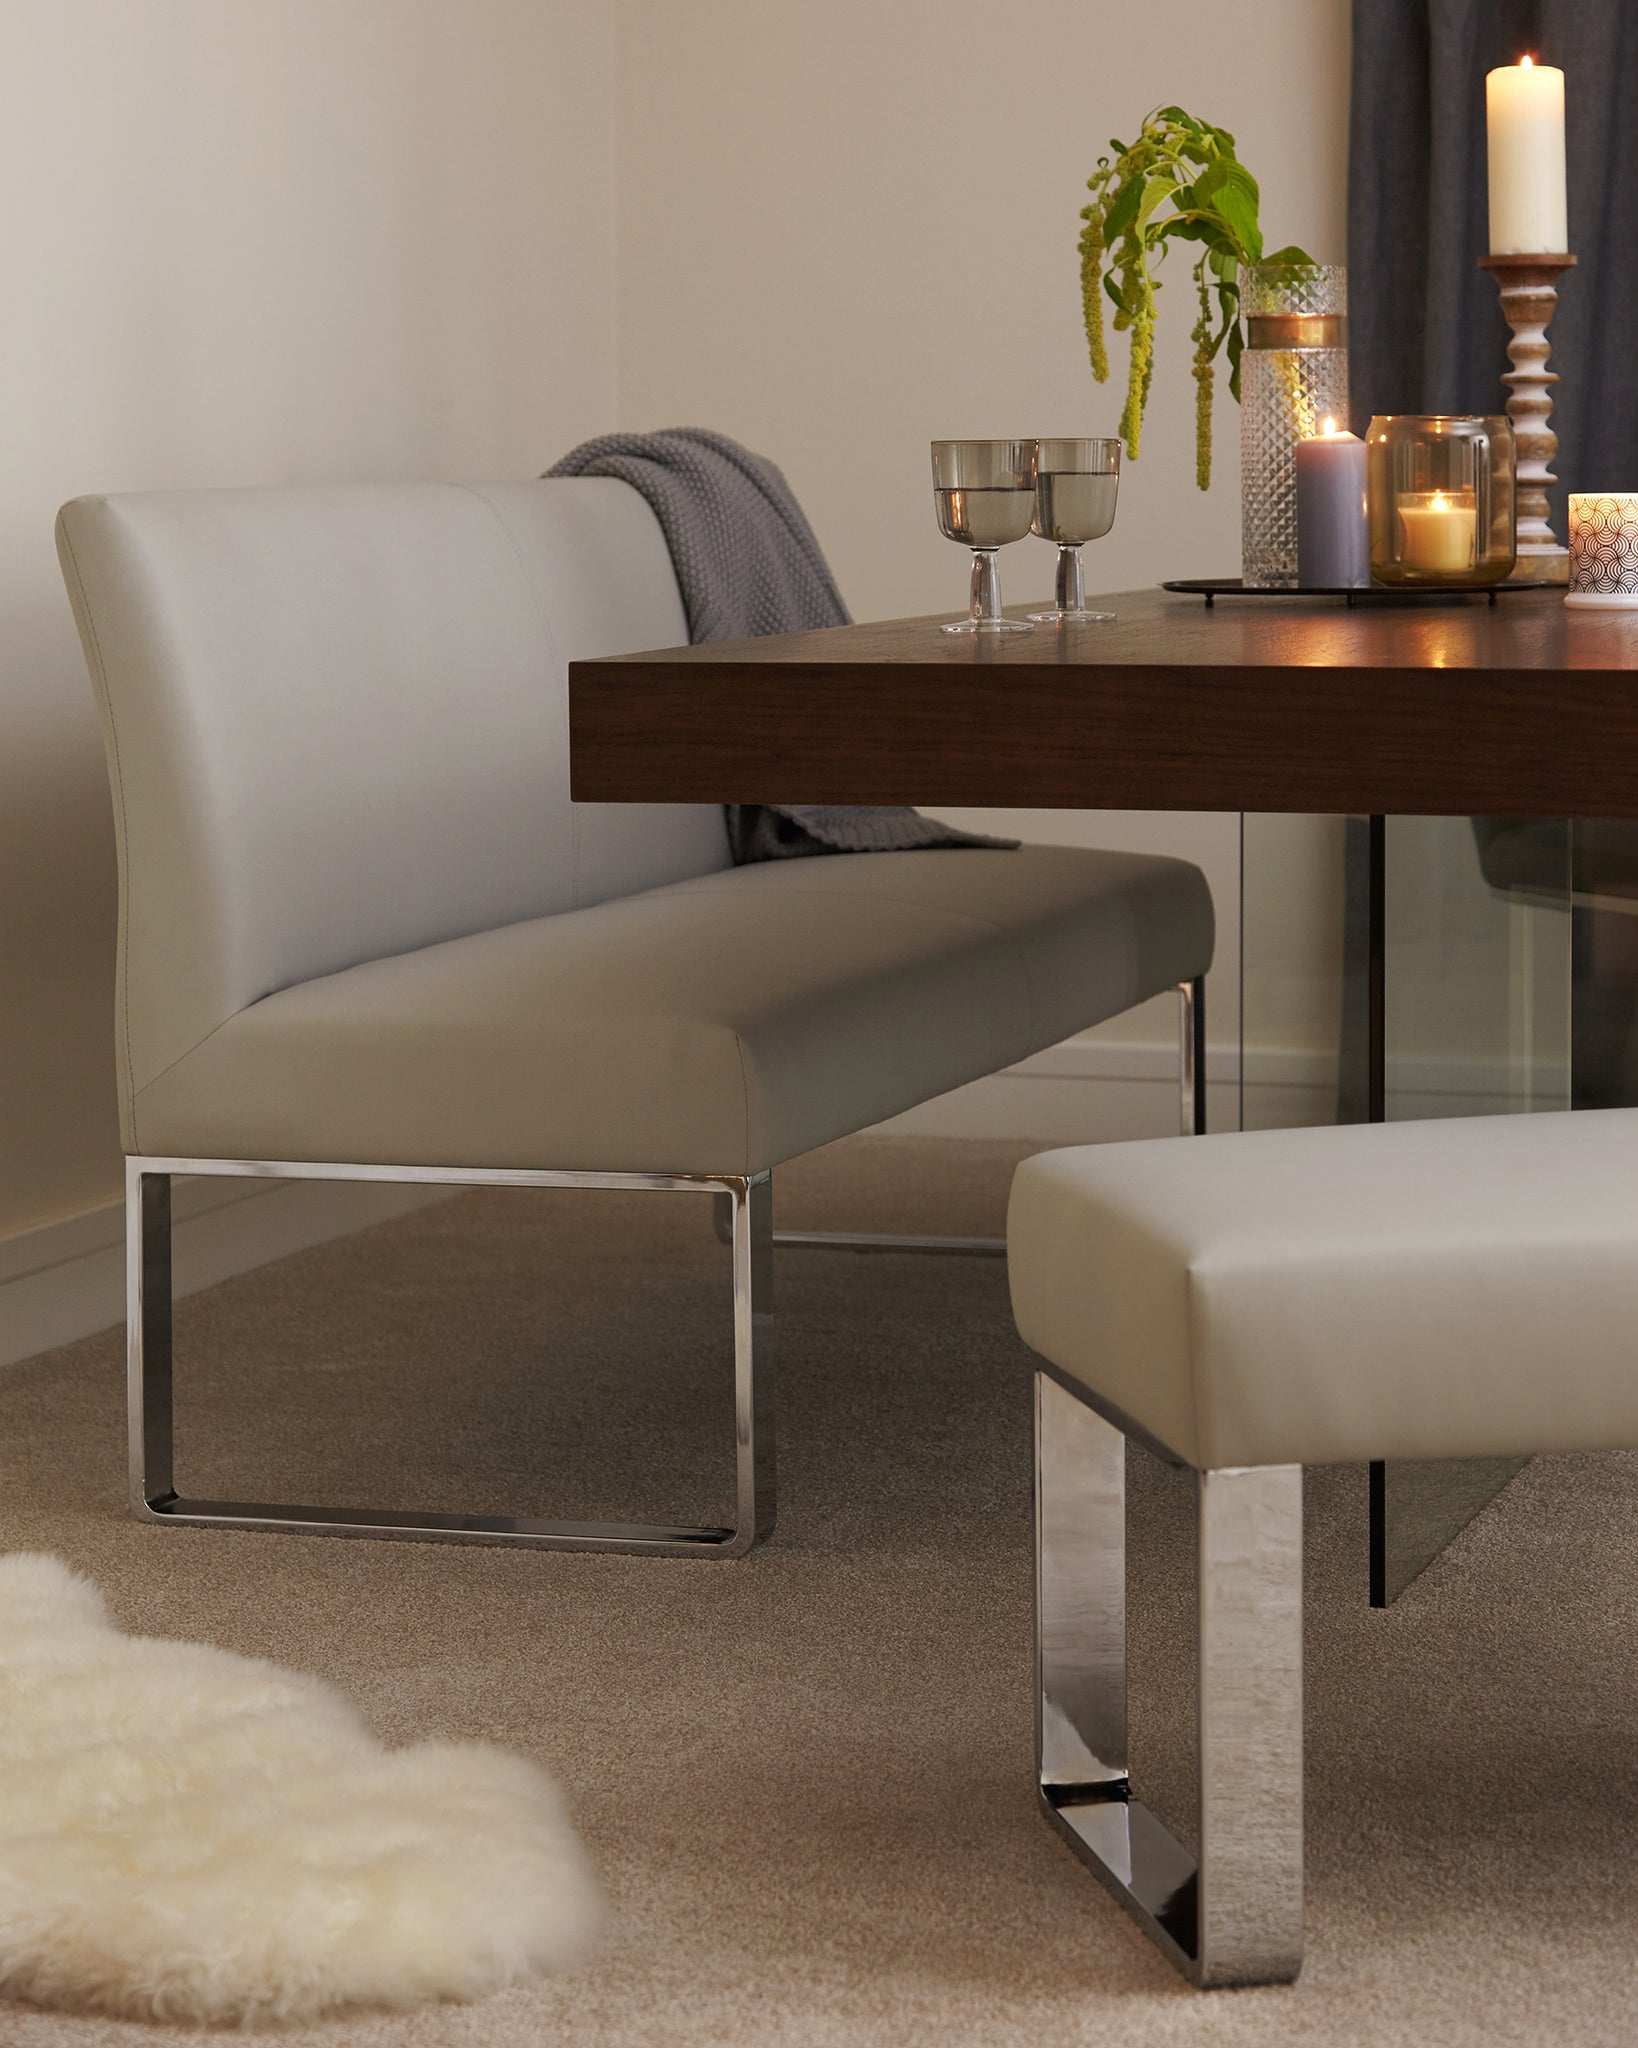 Loop 3 Seater Light Grey Faux Leather & Chrome Bench Without Backrest